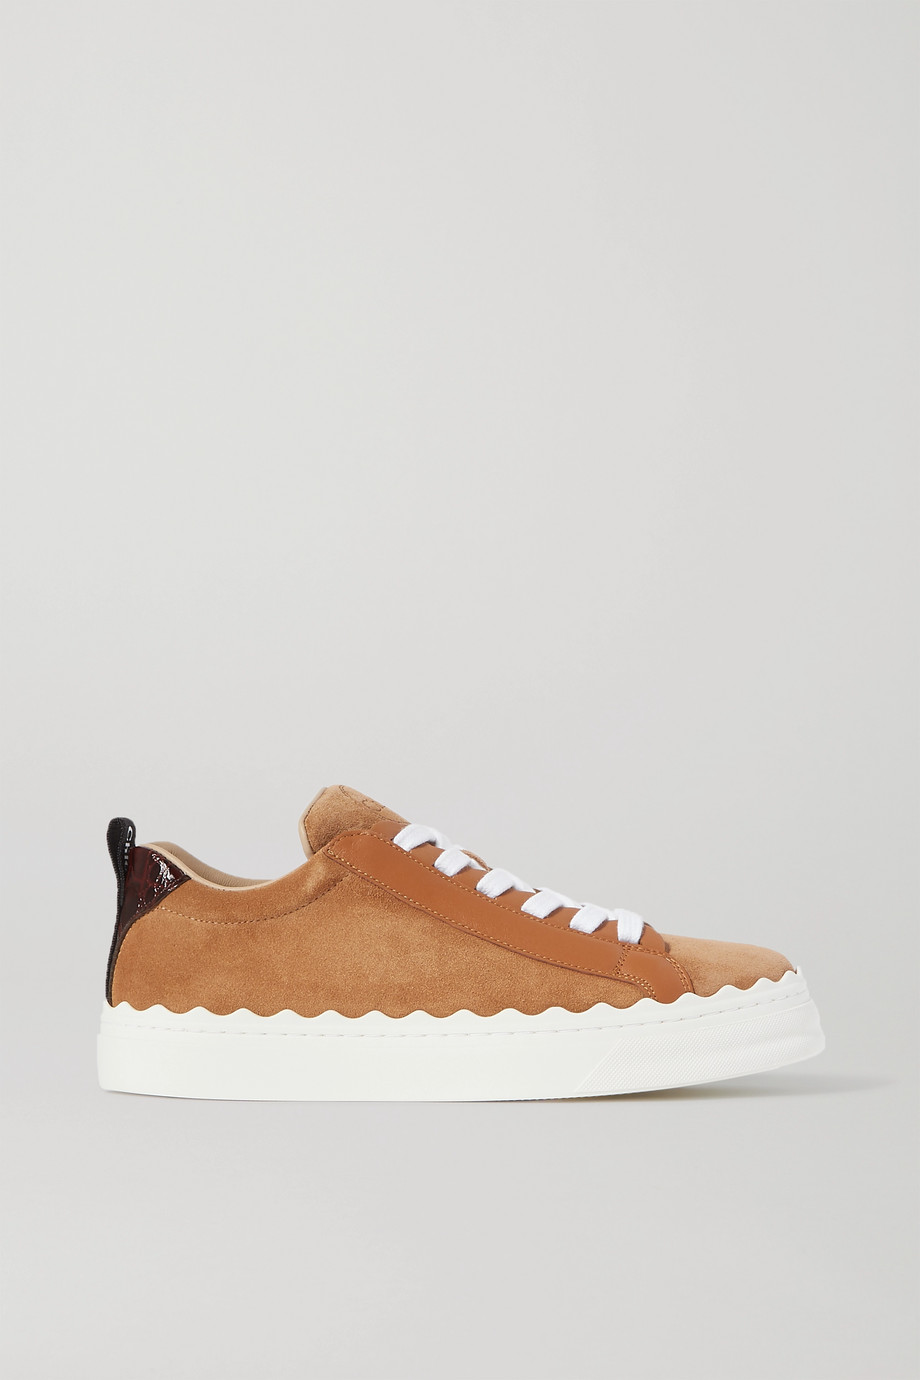 Chloé Lauren scalloped leather-trimmed suede sneakers